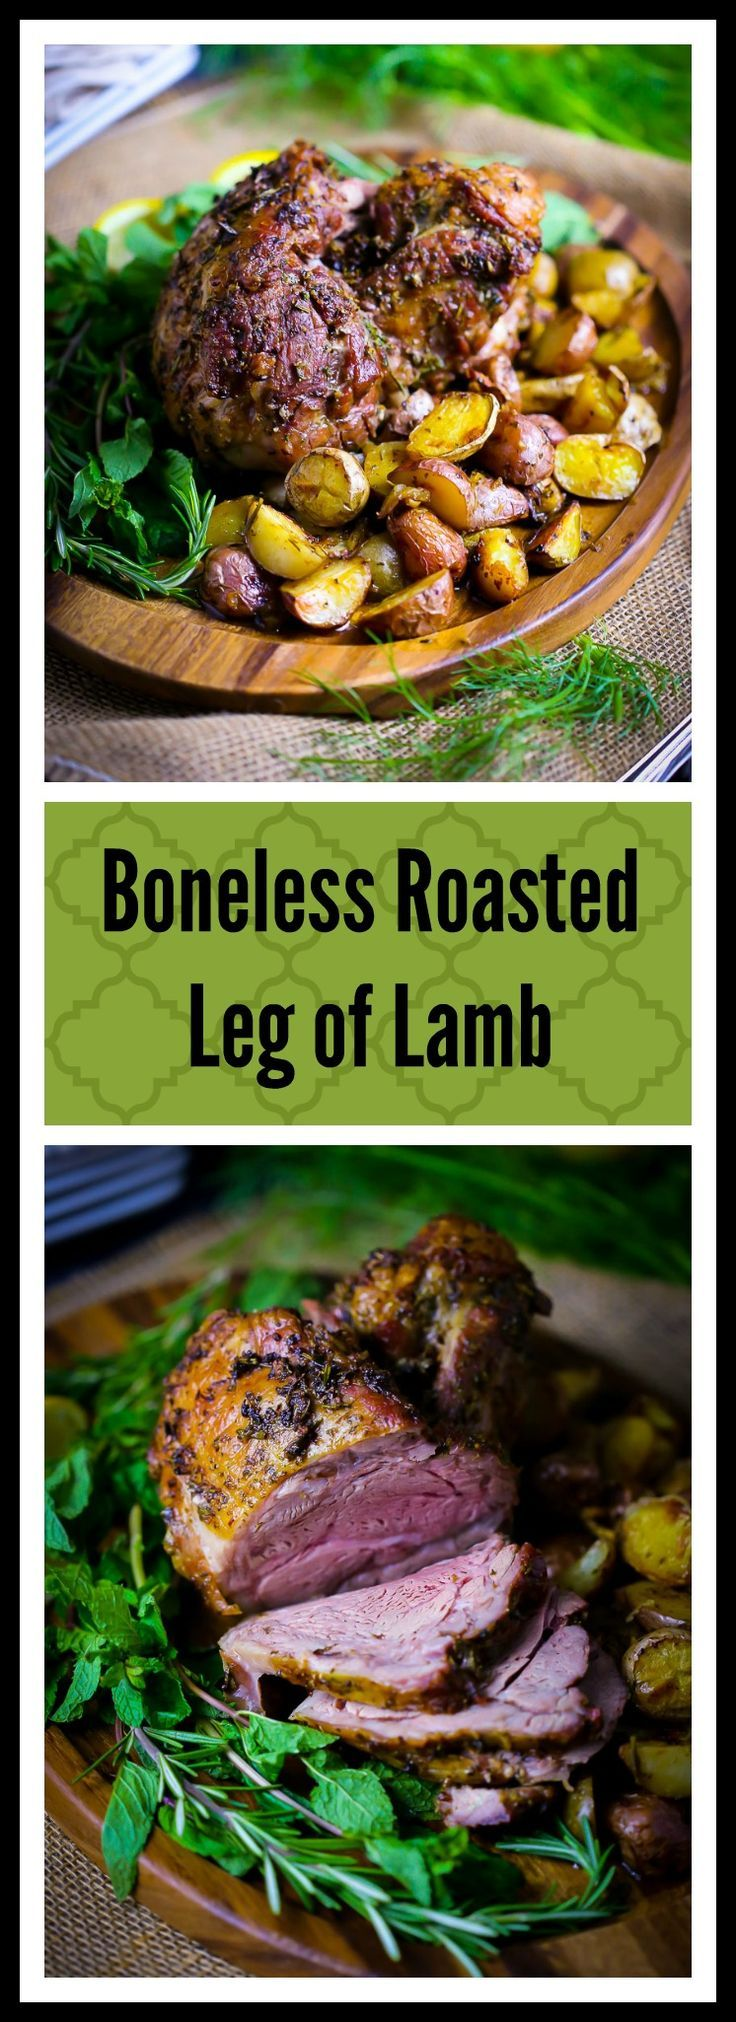 Looking for an easy and elegant main course for your holiday table? Roasted leg of lamb with baby potatoes fits the bill for Easter or Passover dinner.